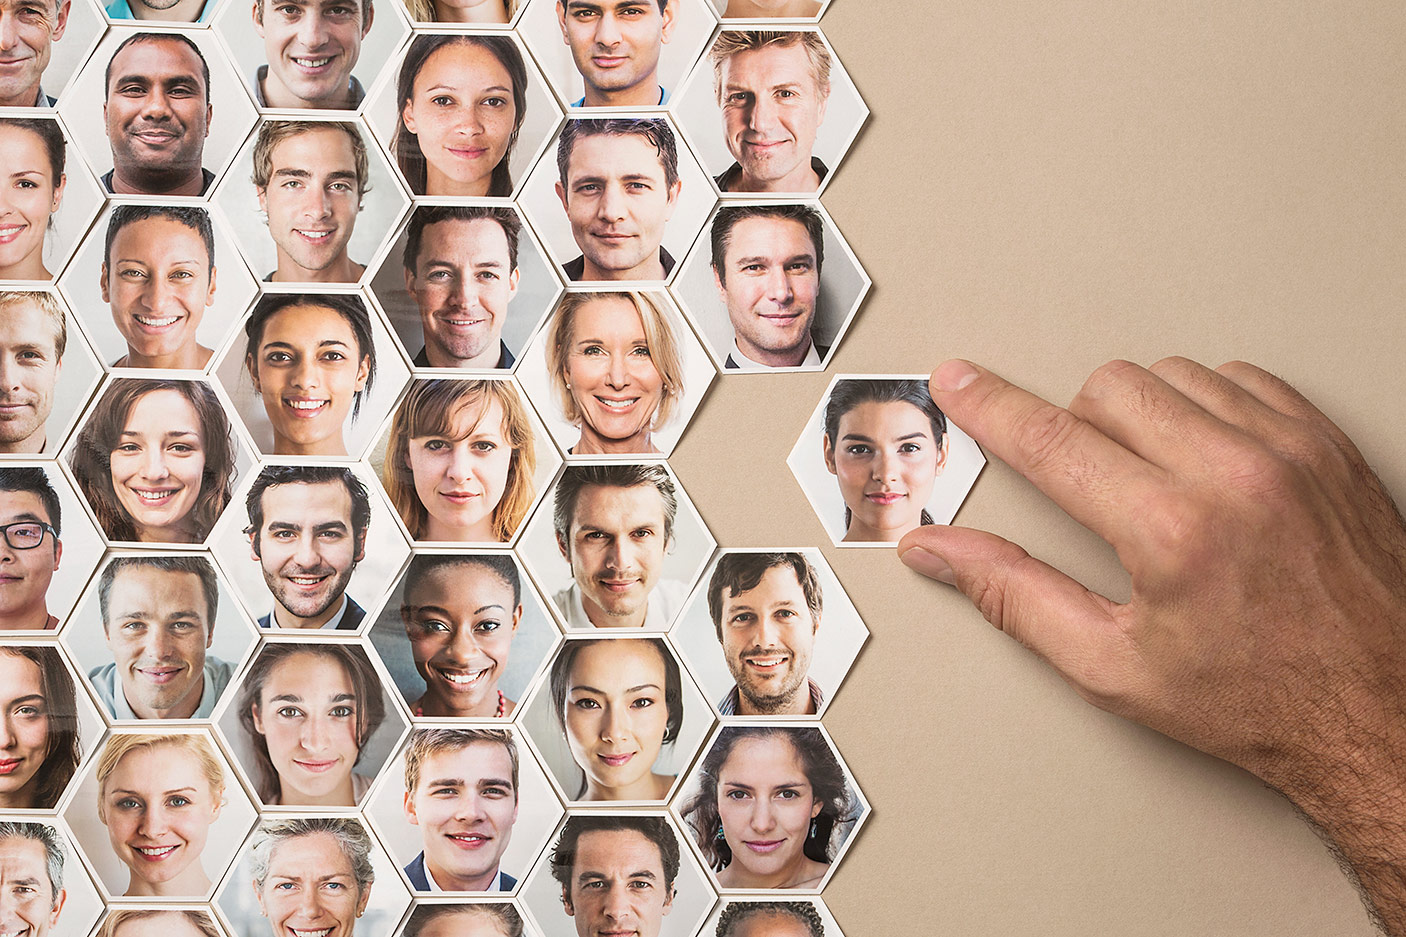 Montage of people's faces on hexagon tiles